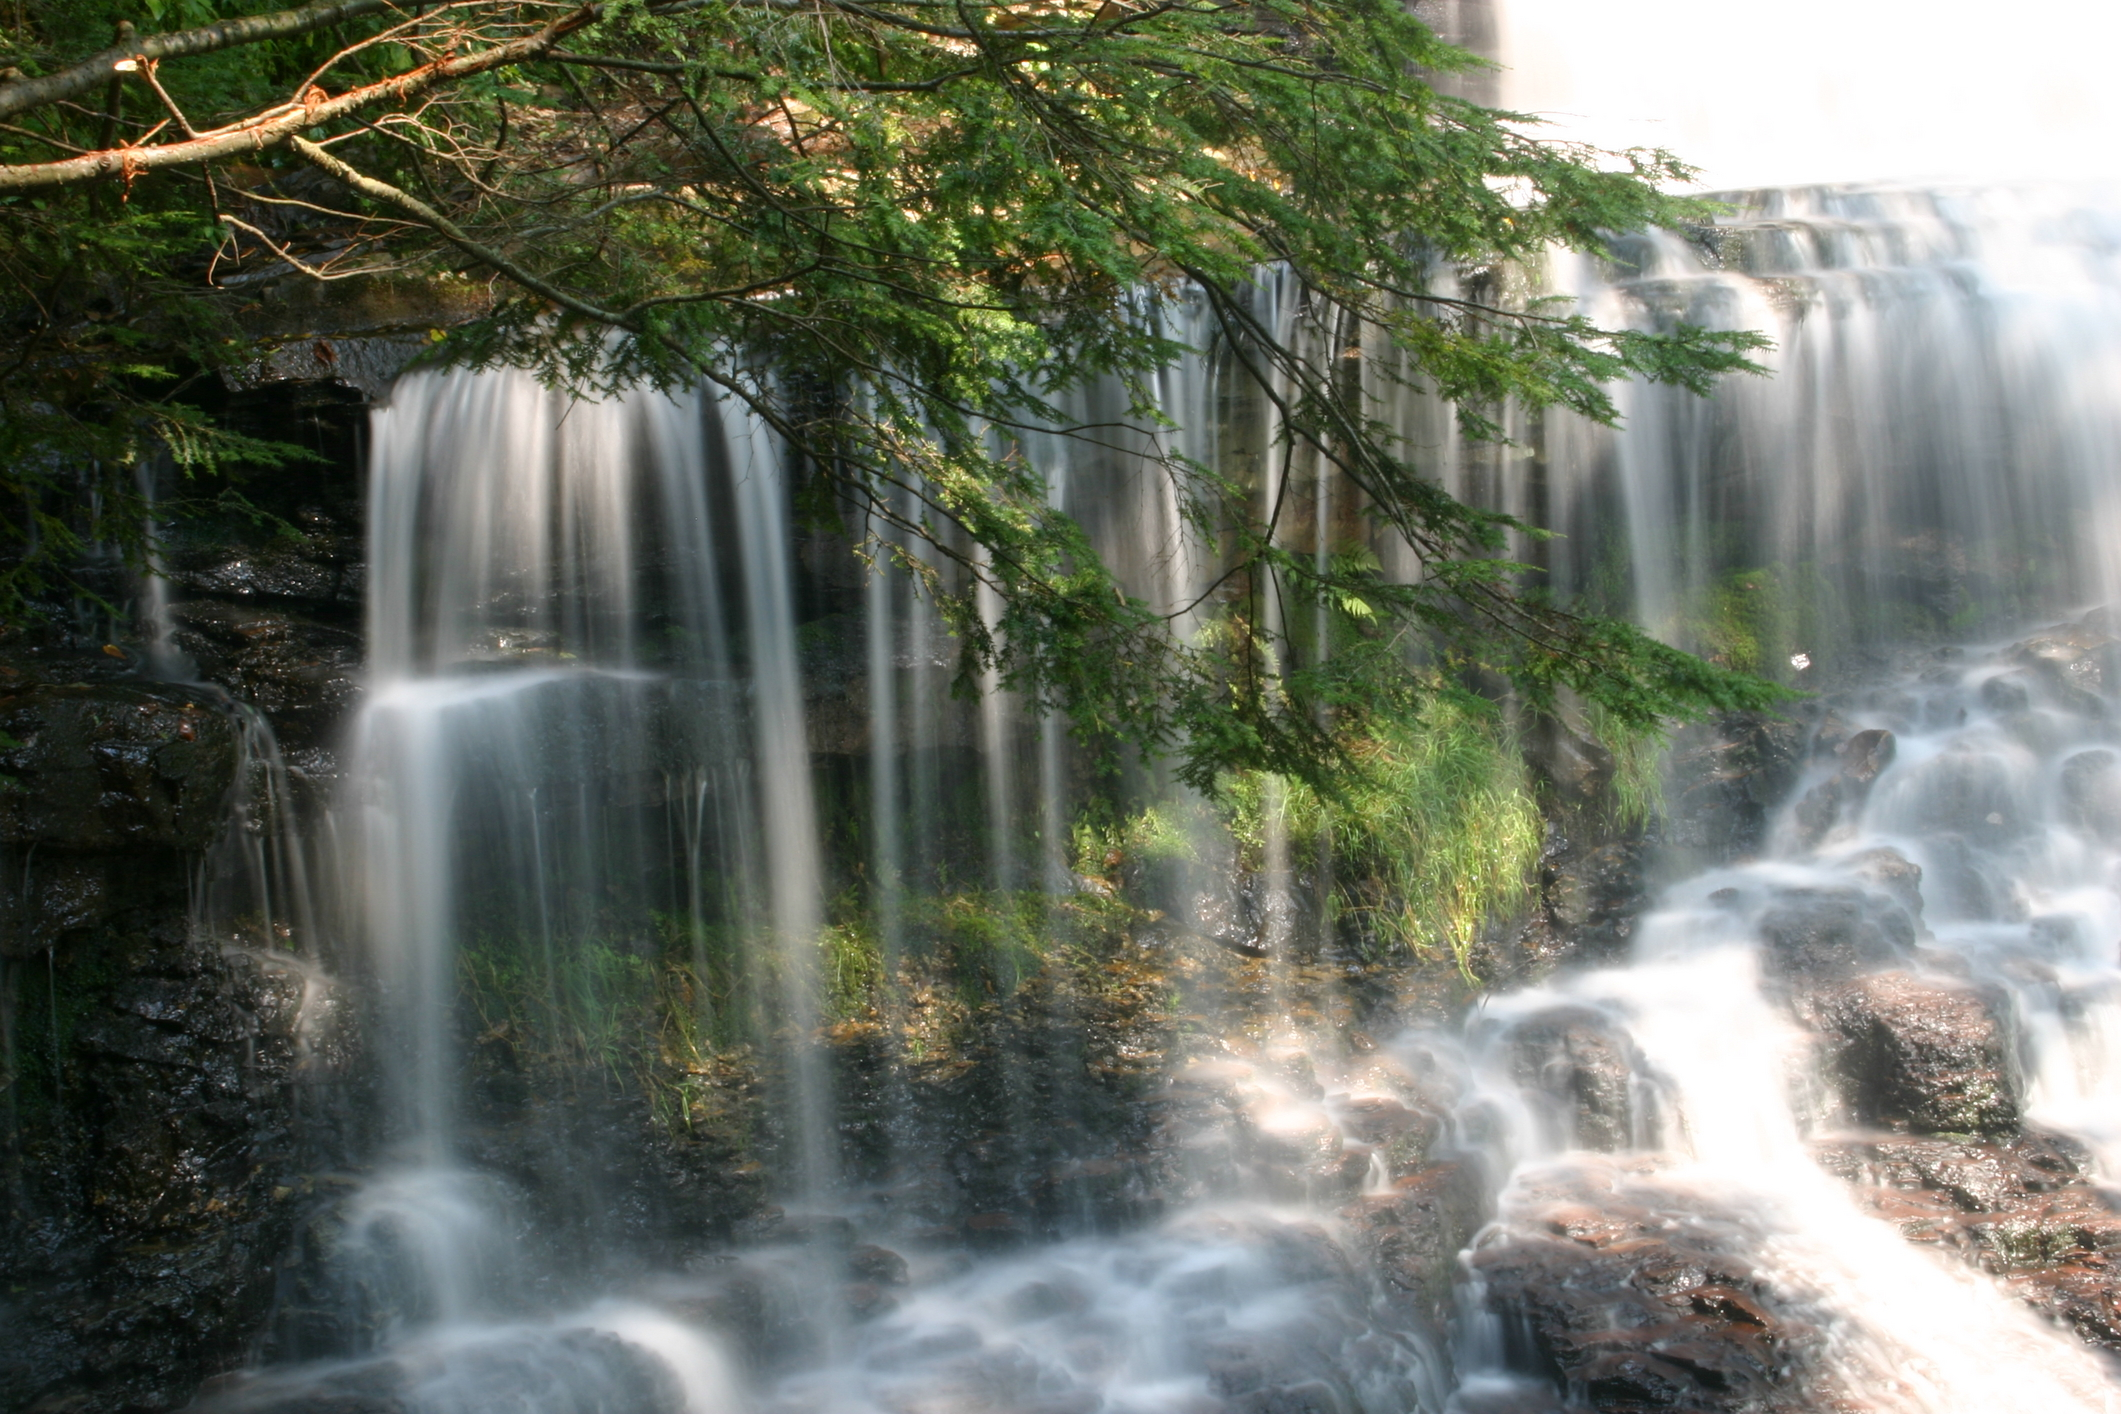 brown branch with green leaves extending in front of wide waterfall with water hitting rocks at bottom